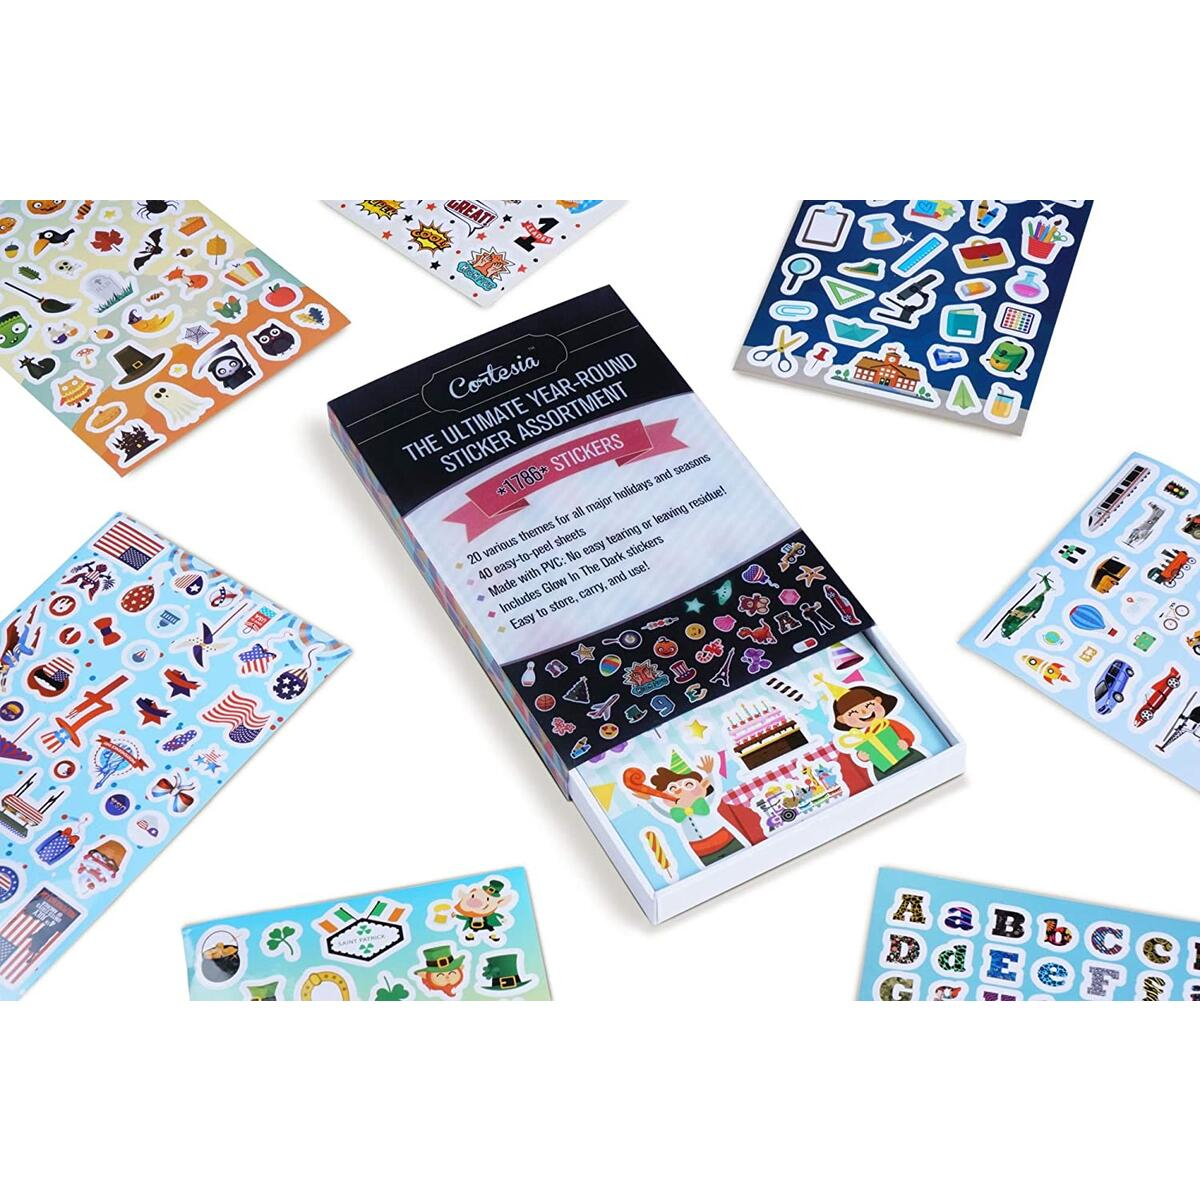 Year-Round Seasonal Sticker Bulk Pack for Kids - Assorted 1786 PCS - 20 THEMES - Perfect For Teachers, School, Students, Toddlers, Scrapbooking. Incl. All Major Holidays, Seasons, Special Fun Themes